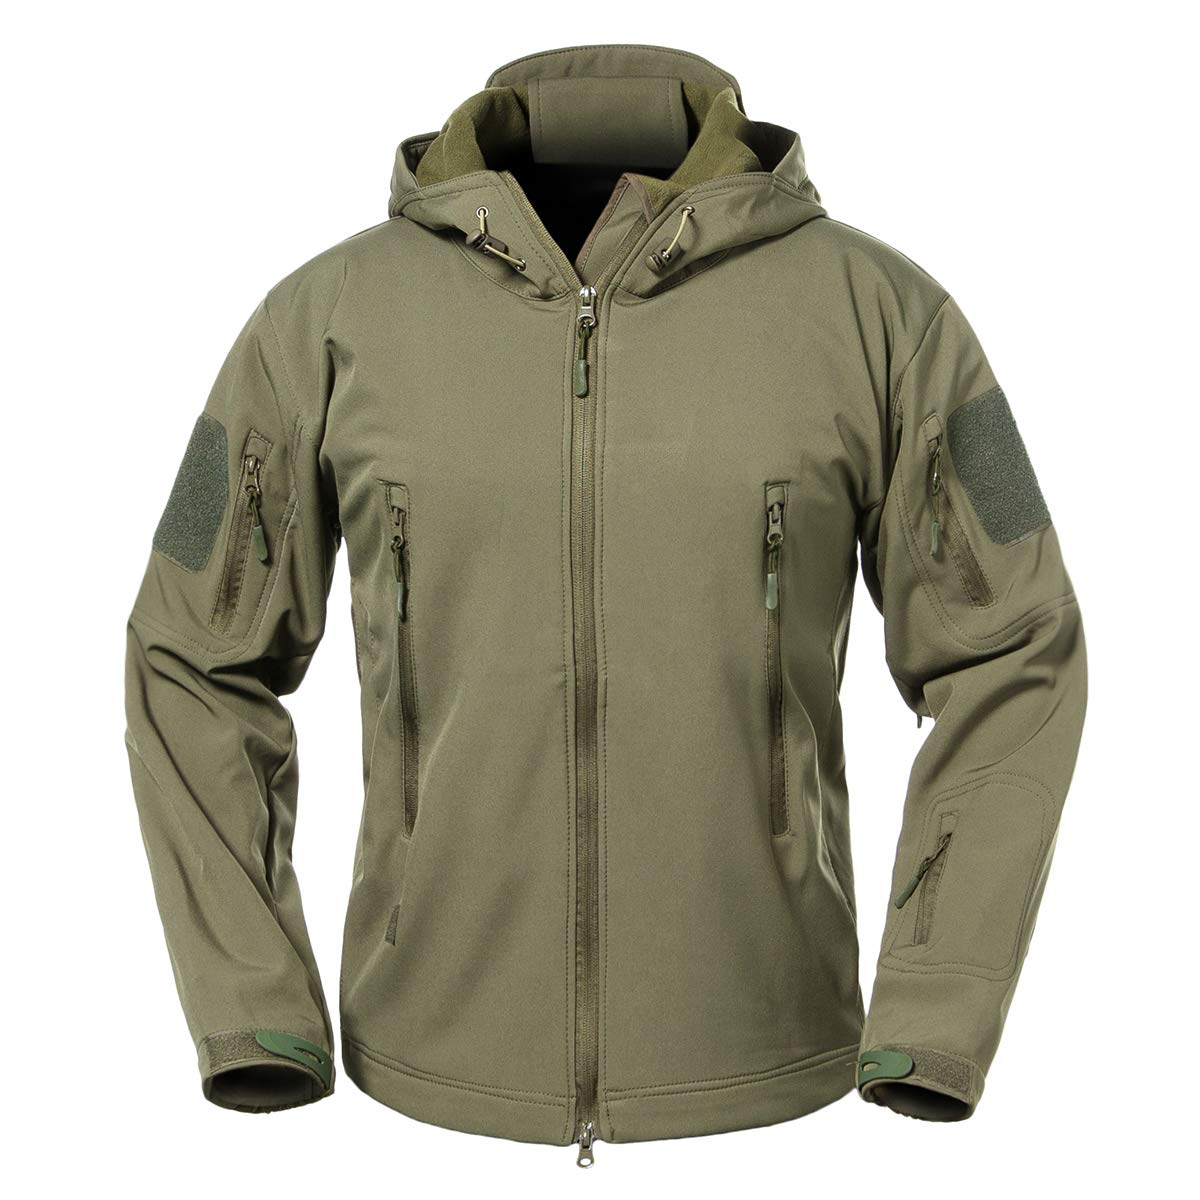 b01ddfd5e5f34 Outer Shell: 94% Polyester, 6% Spandex; Lining: 100% Polyester Zipper  closure. We compare the jacket's tag size with US size. Size US S =Tag M;  US M =Tag L; ...